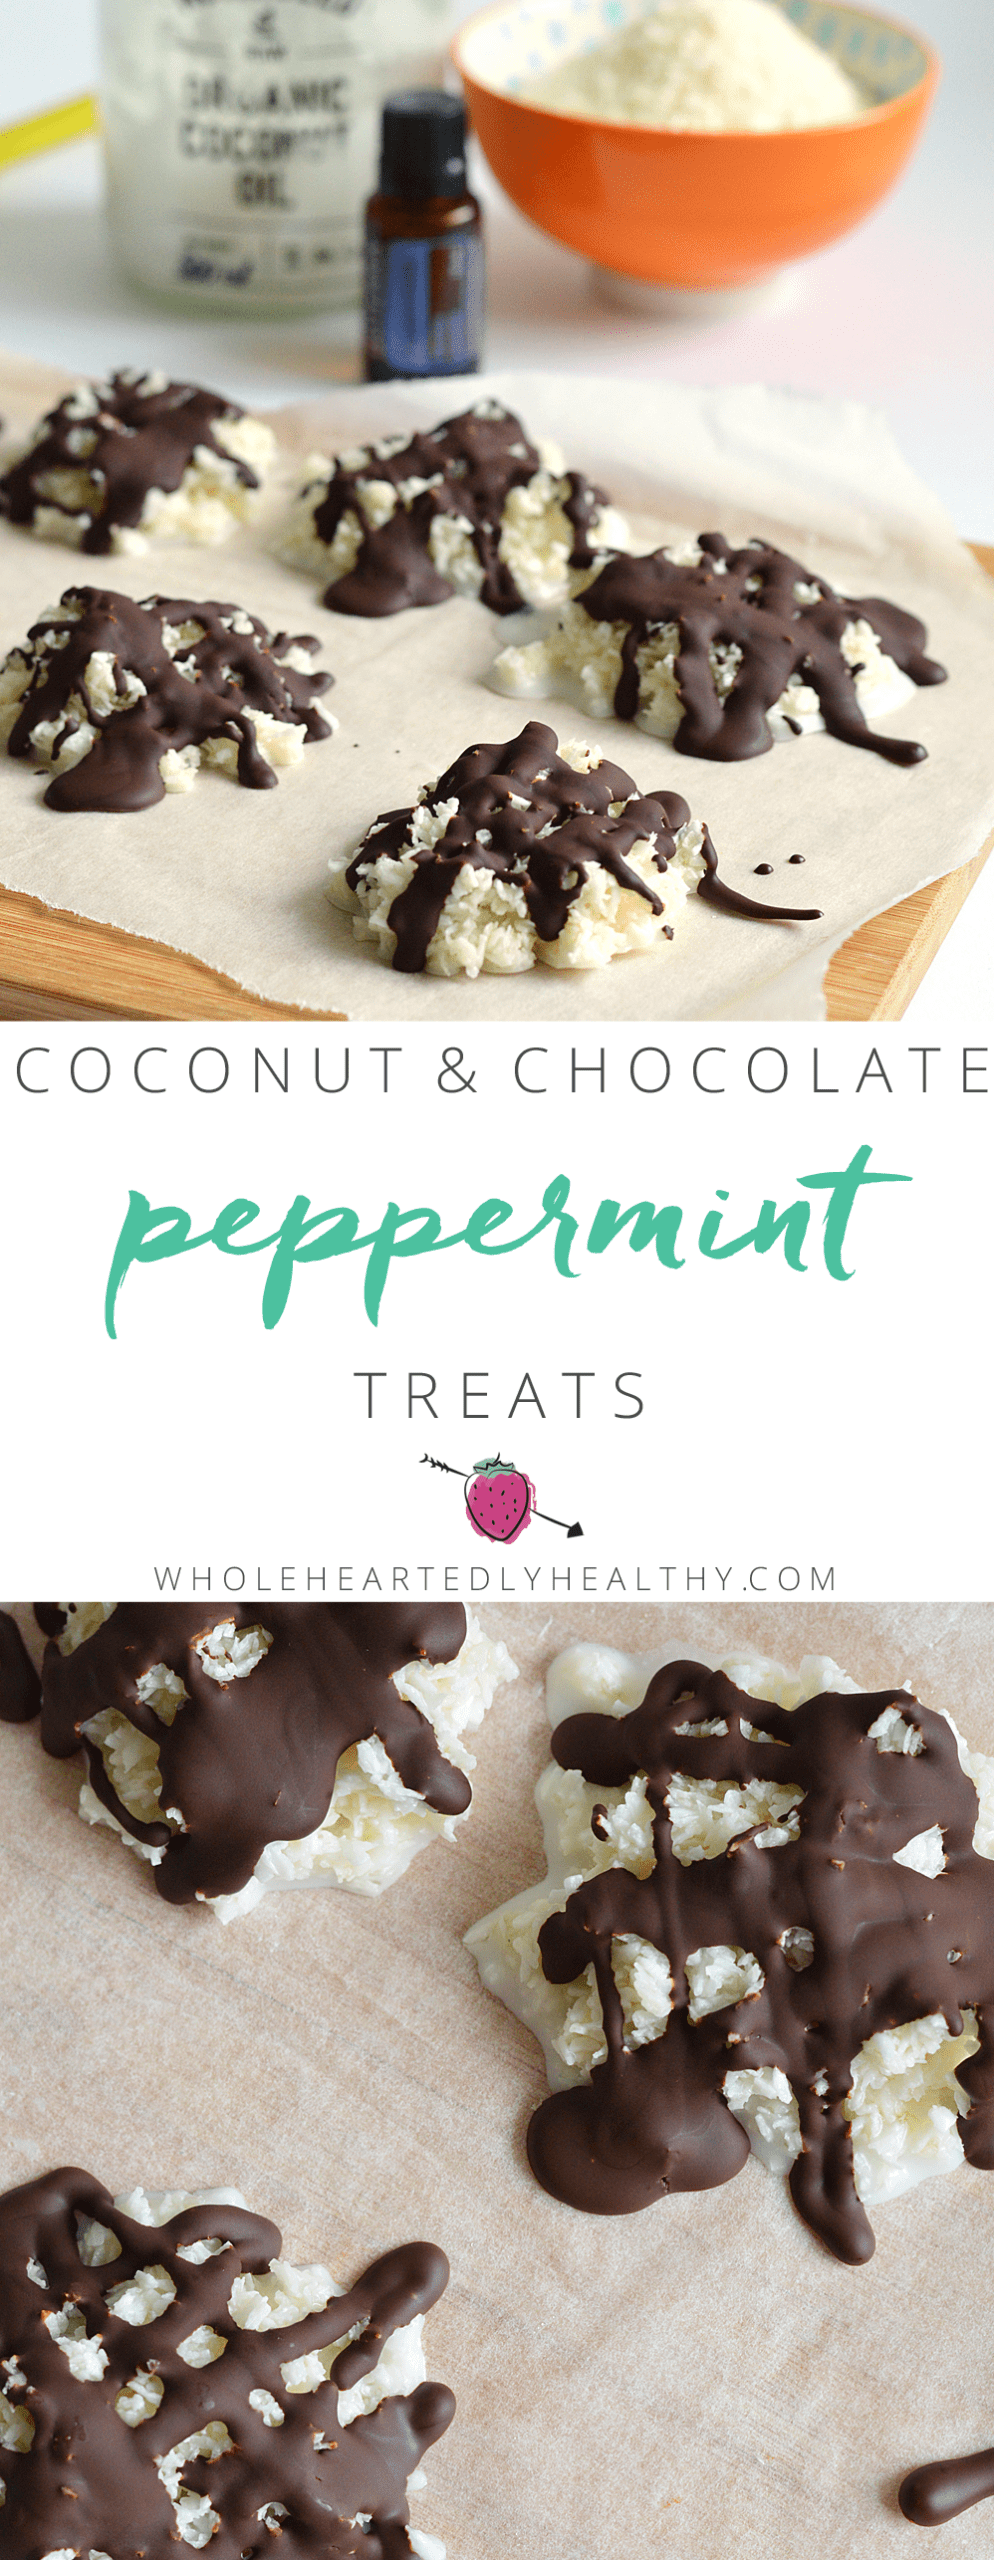 Coconut and chocolate peppermint treats: healthy peppermints